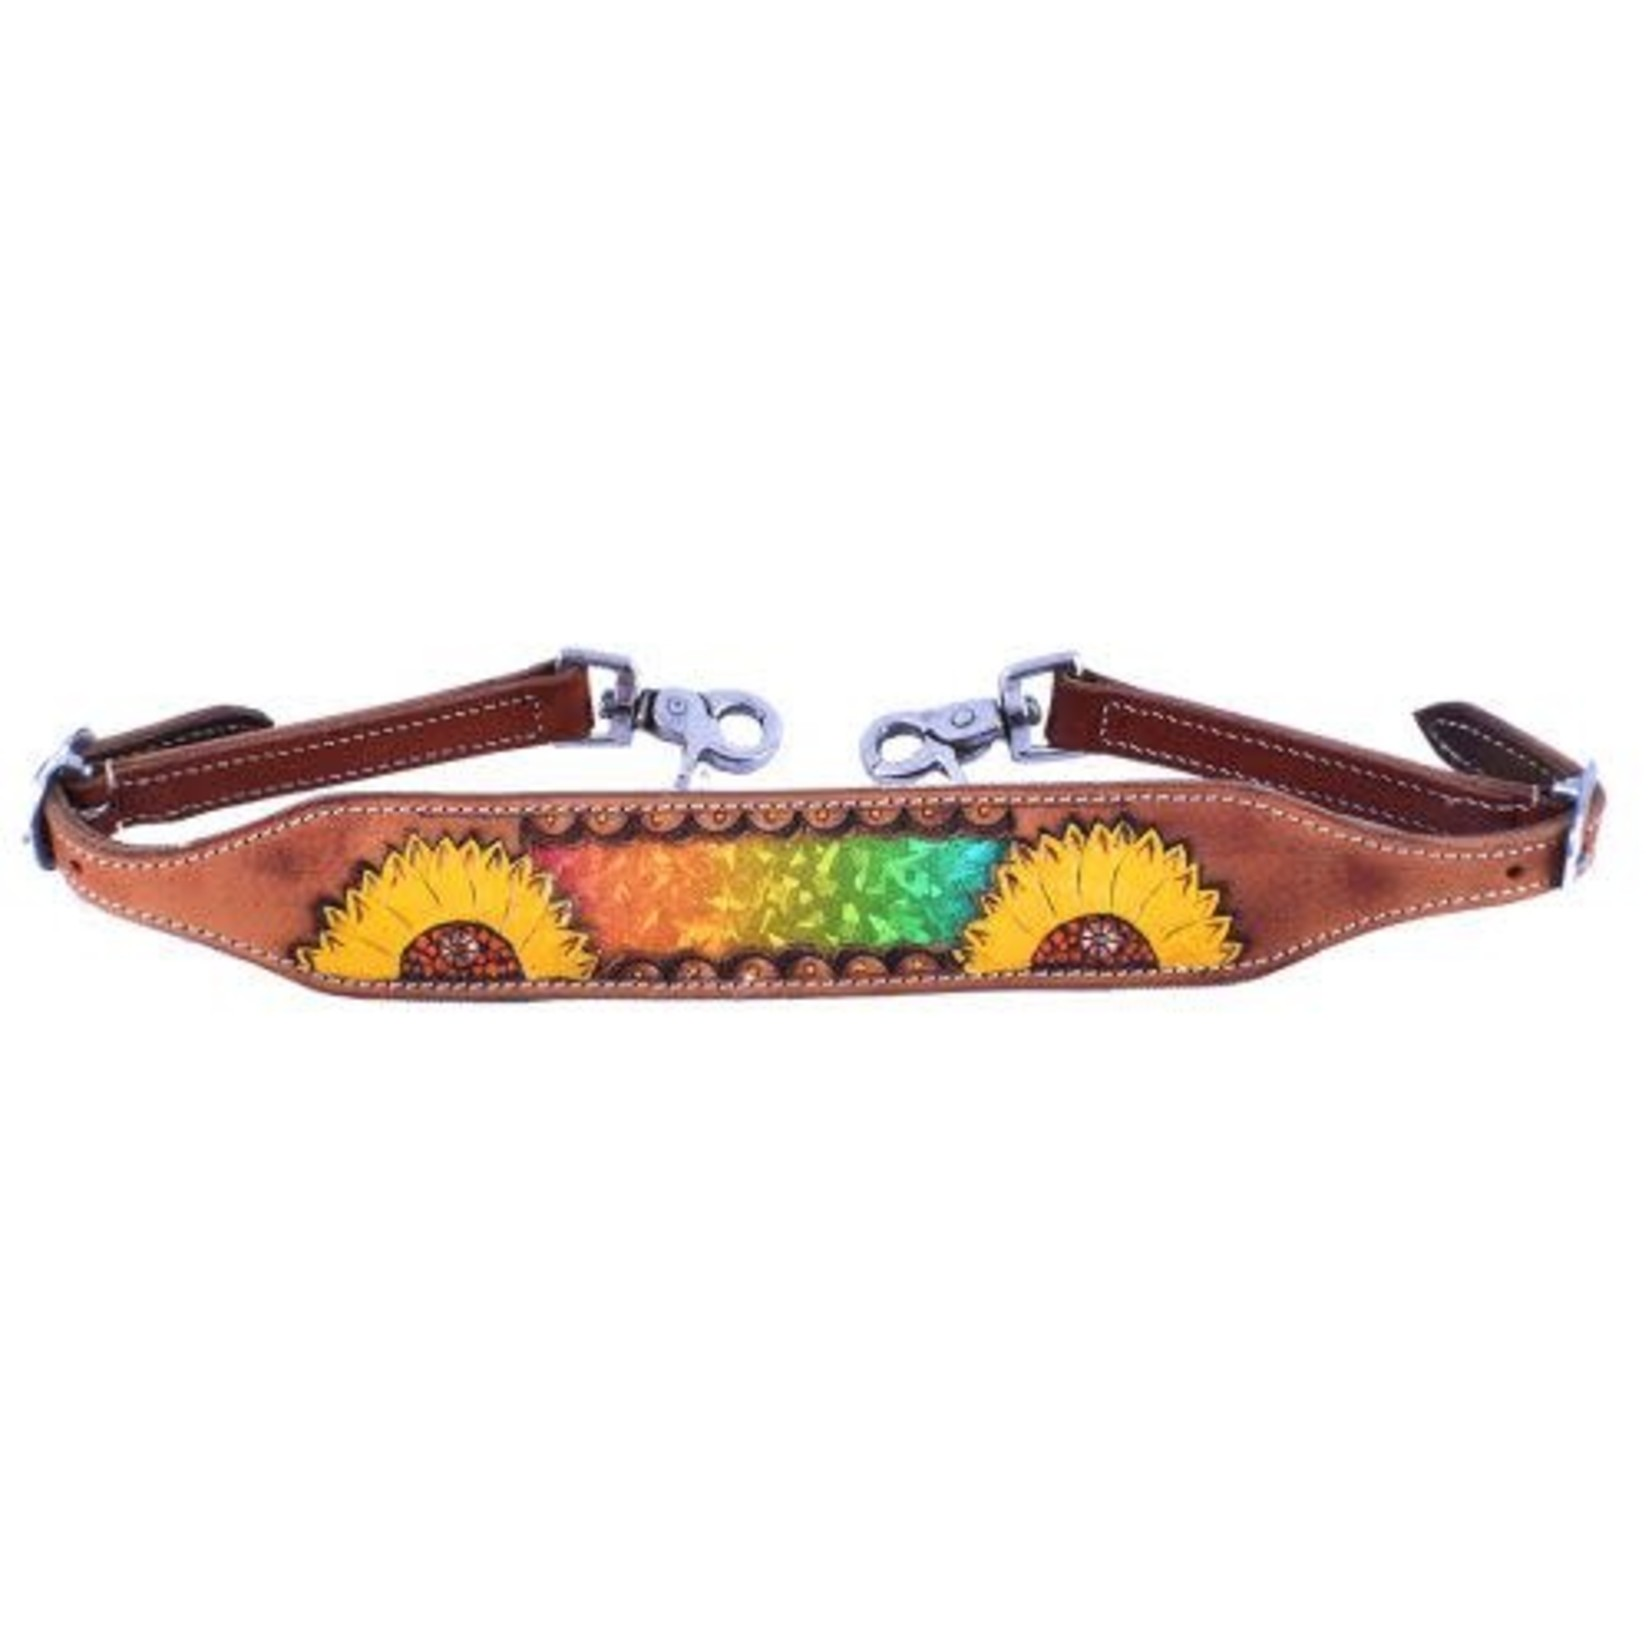 Sunflower Iridescent Wither Strap